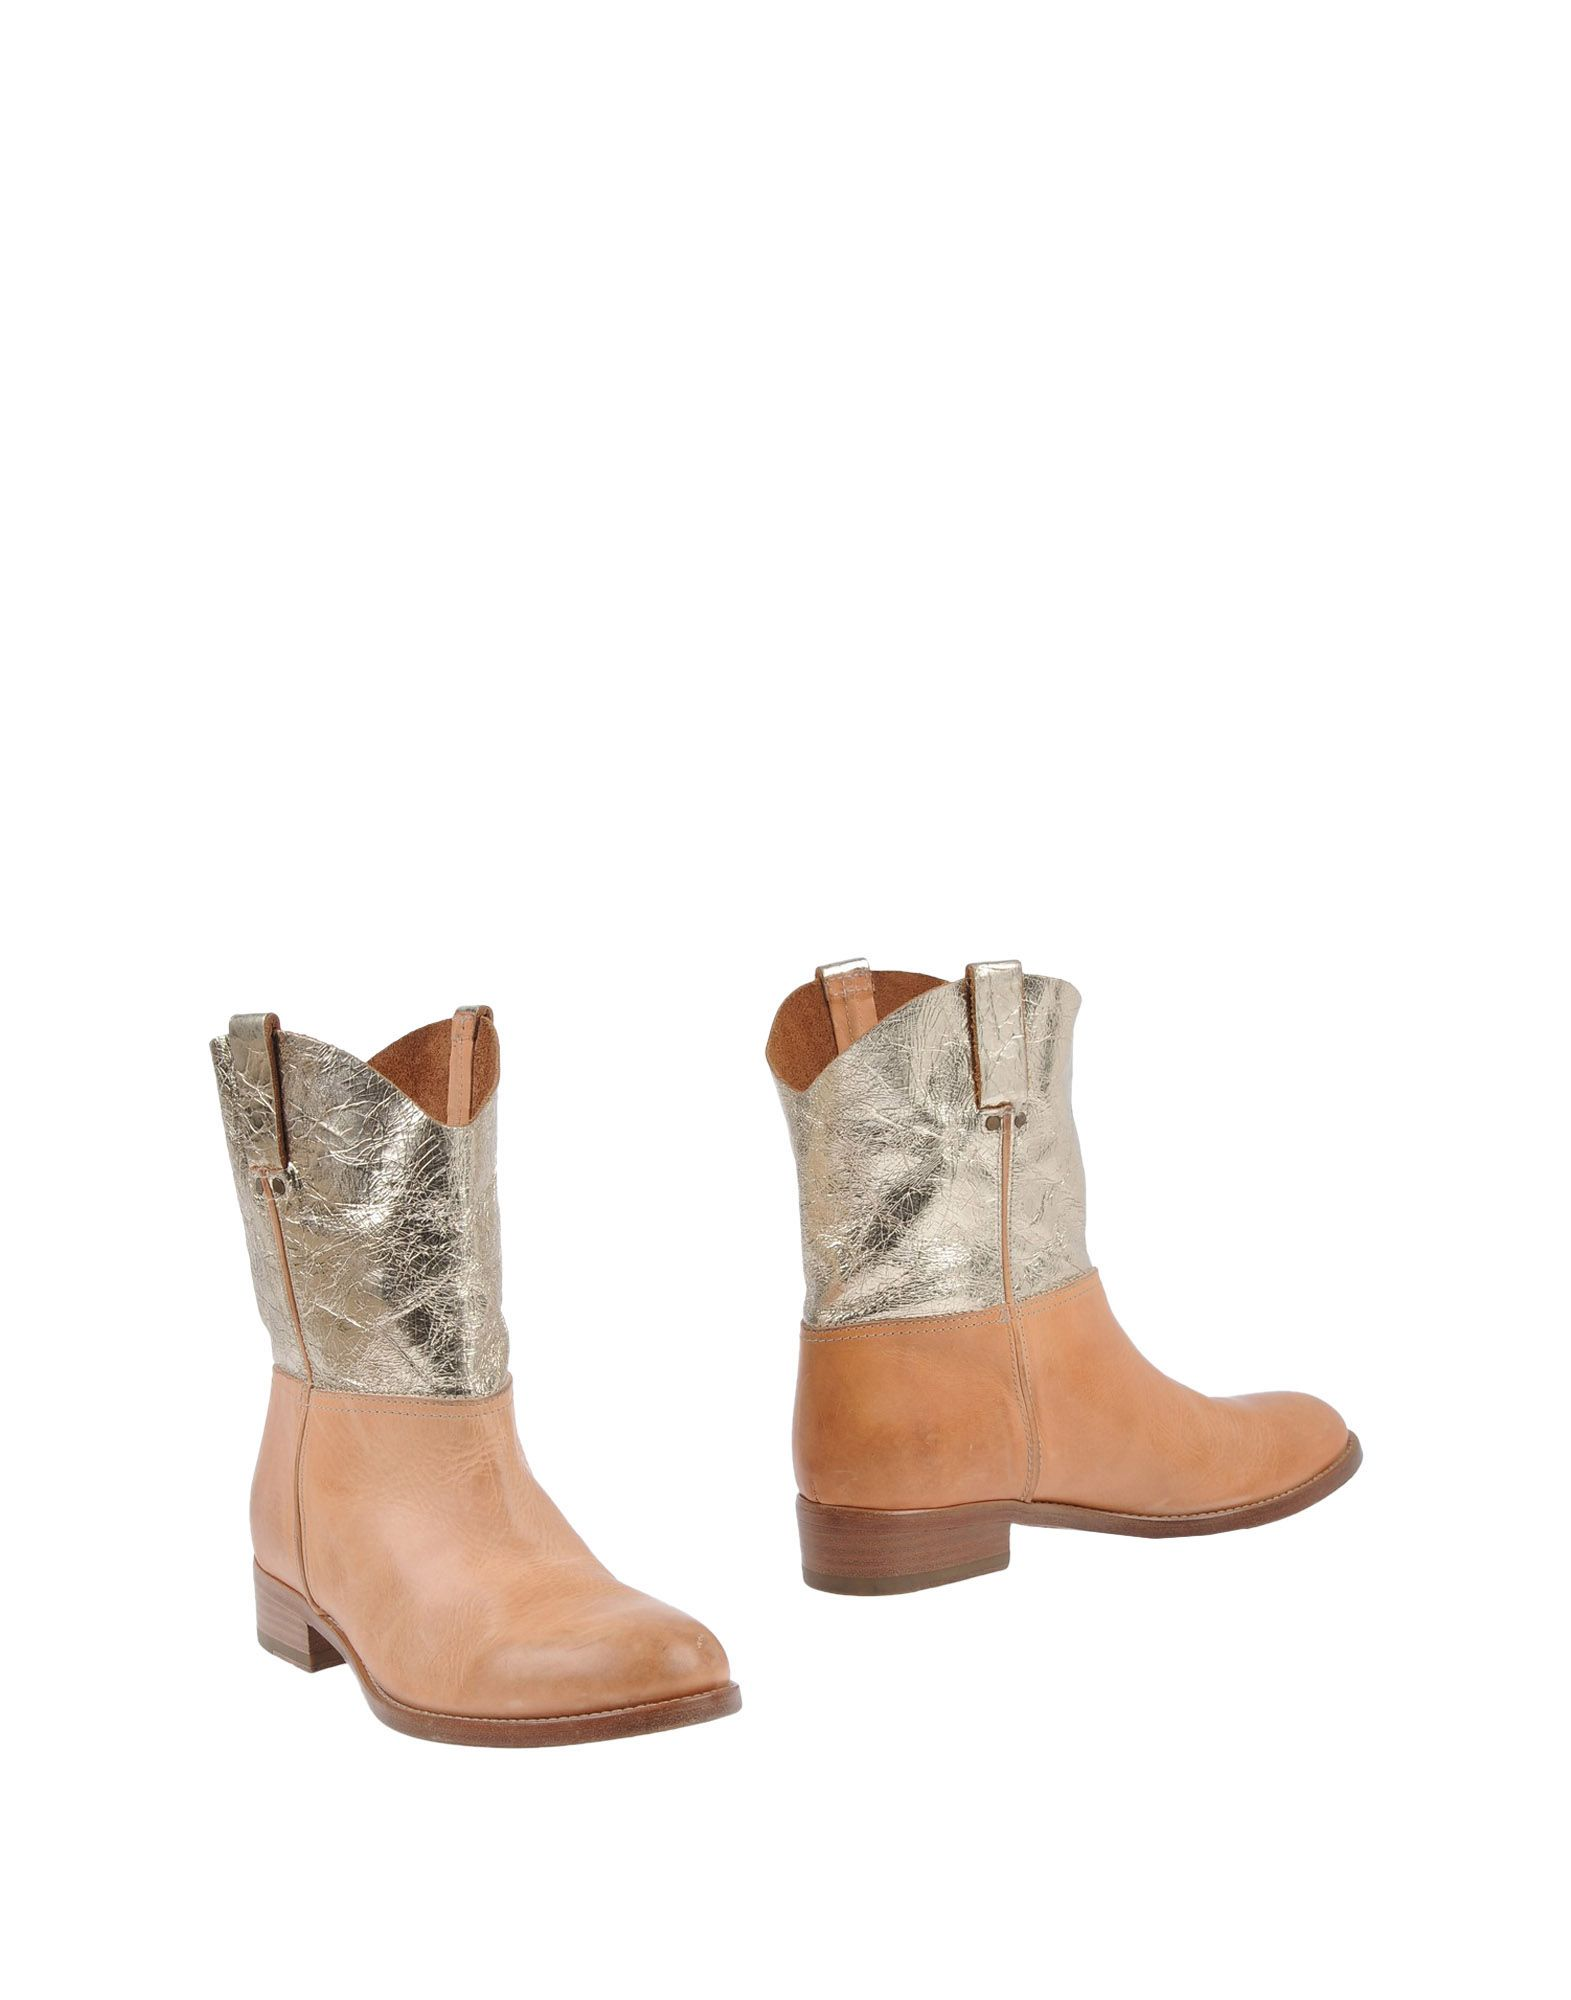 Buttero® Ankle Boot Boots - Women Buttero® Ankle Boots Boot online on  Australia - 11468686WR c0af80